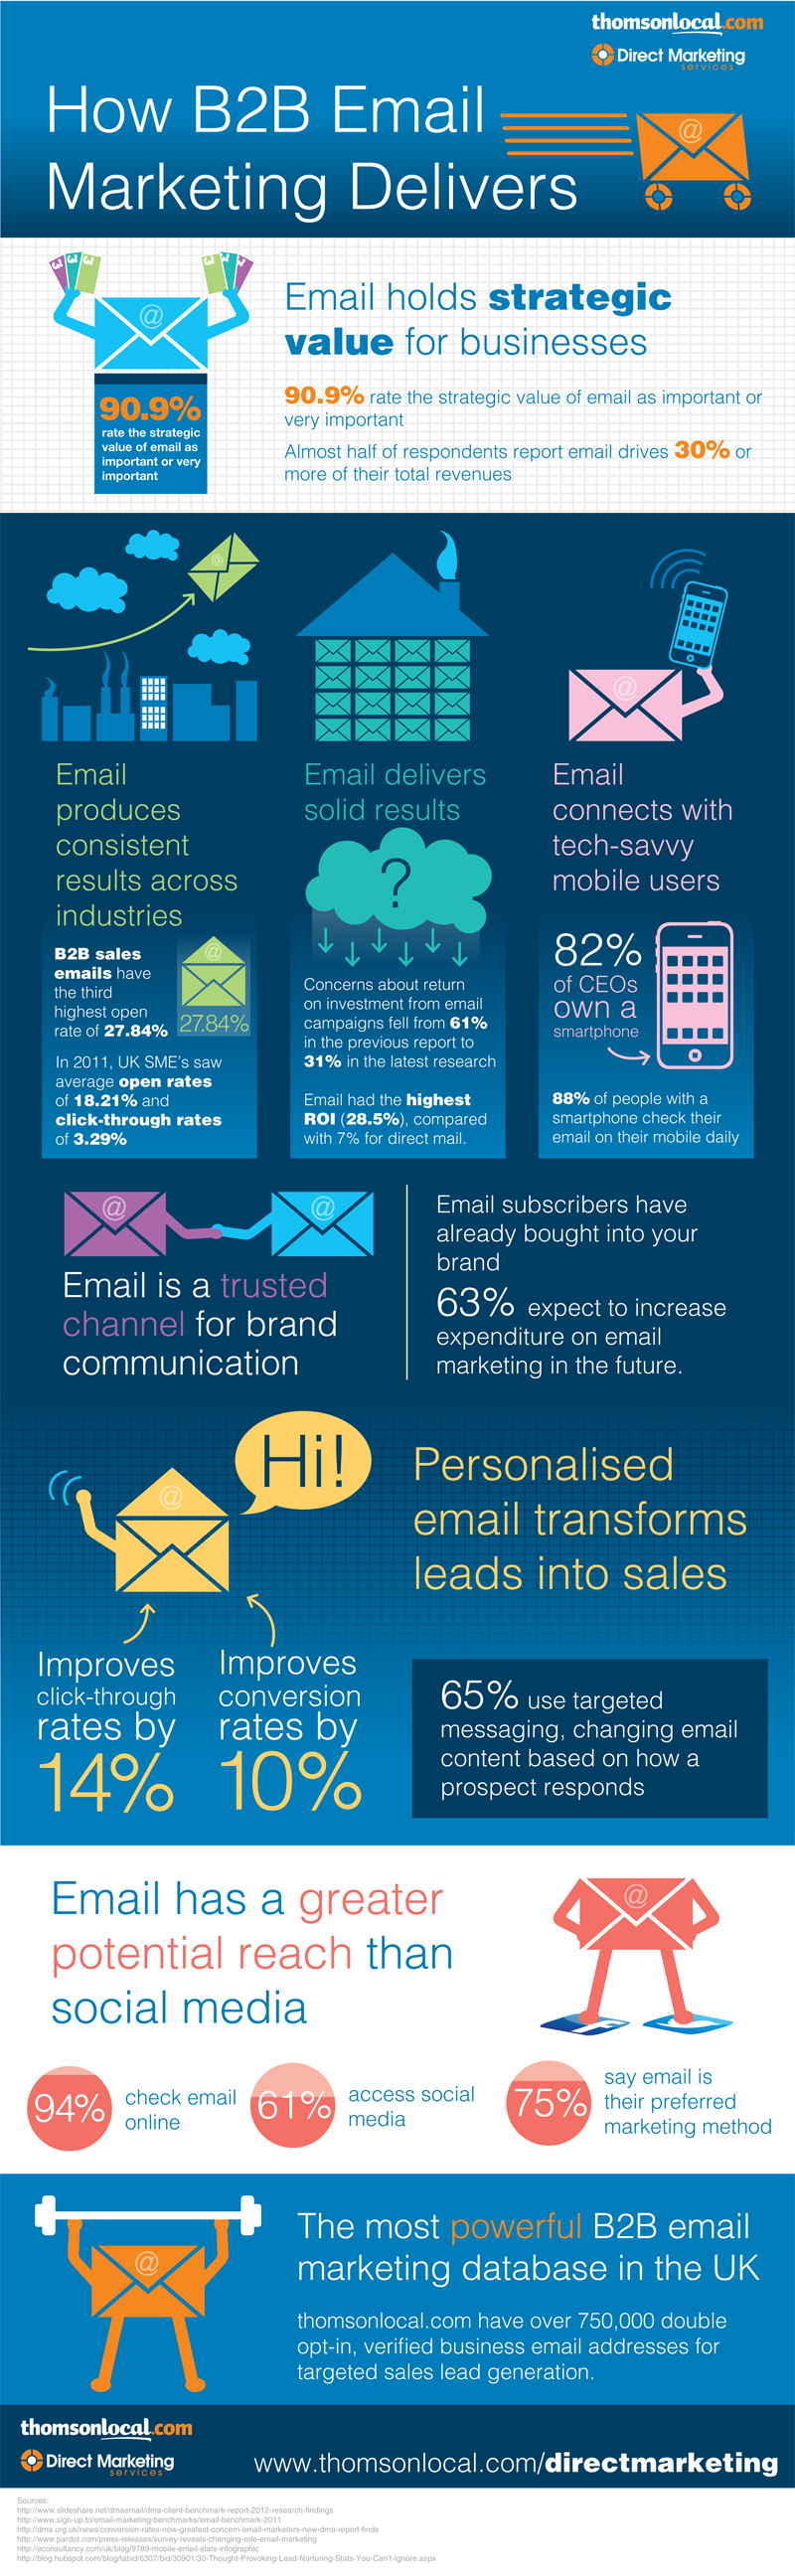 B2B Email Marketing Trendss